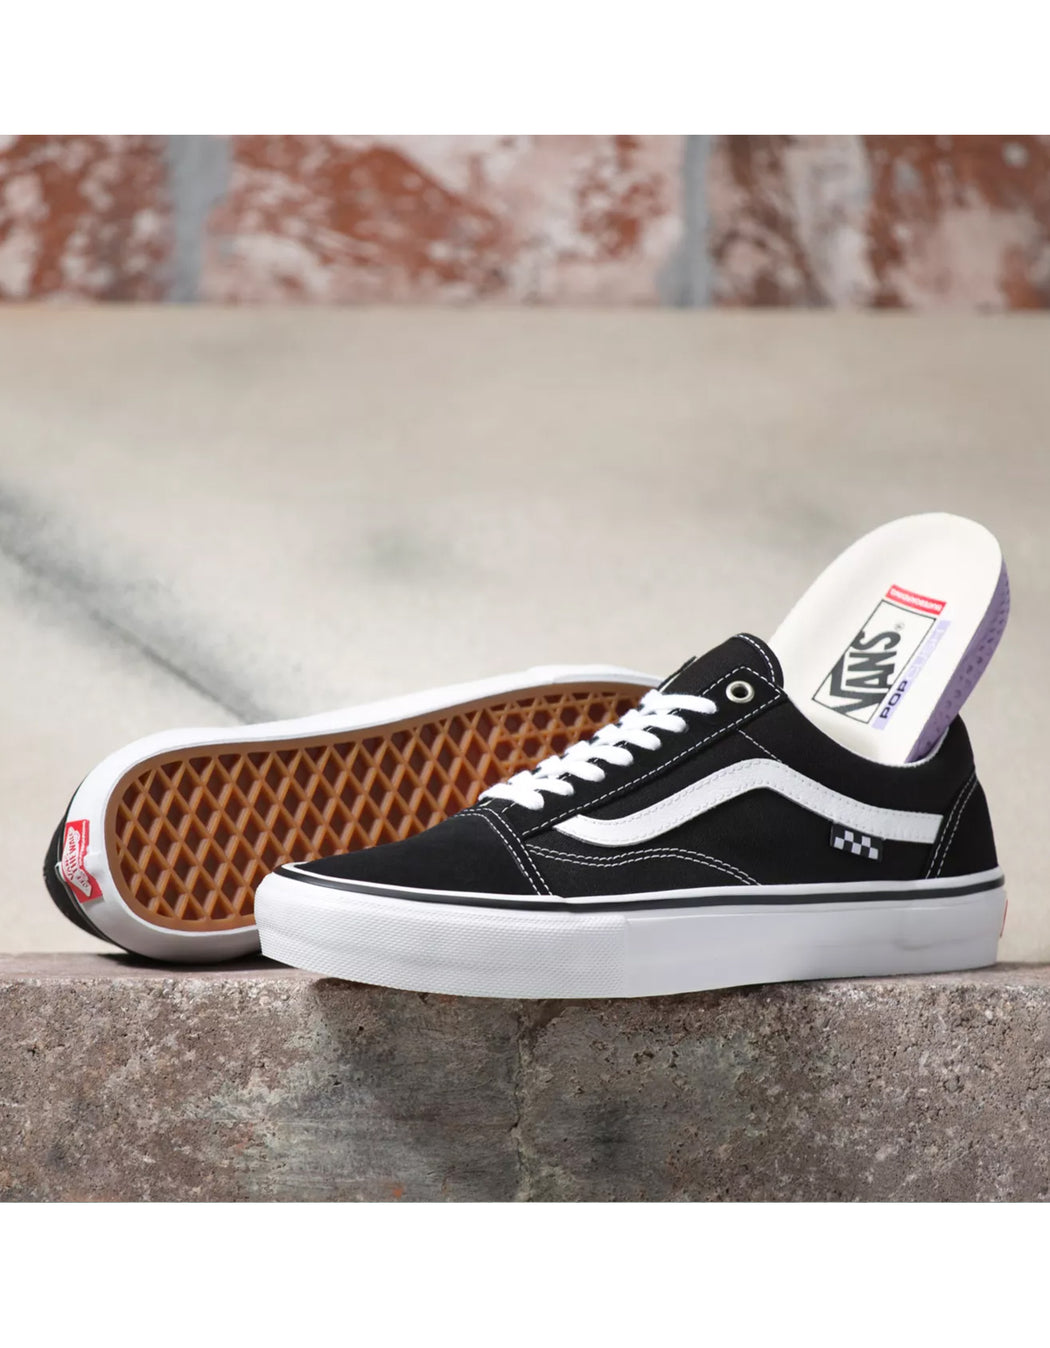 Vans Skate Old Skool in Black/White